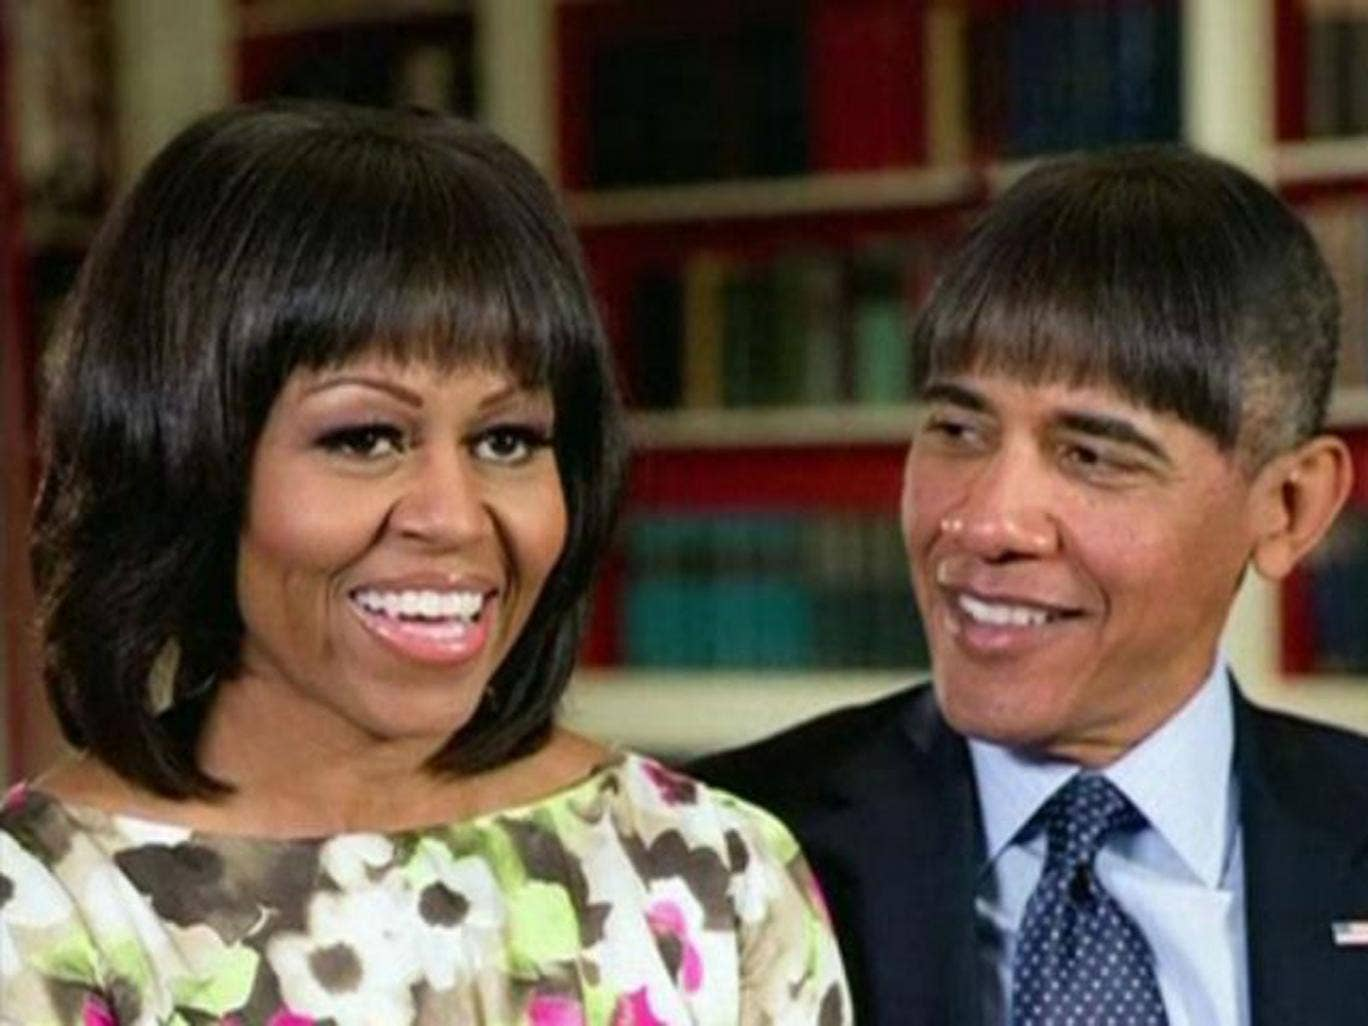 U.S. President Barack Obama makes light of his wife Michelle Obama's new bangs with a mock pictures of himself with the same hairdo in this humorous photo created by the White House shown at the annual White House Correspondents' Association dinner in Was